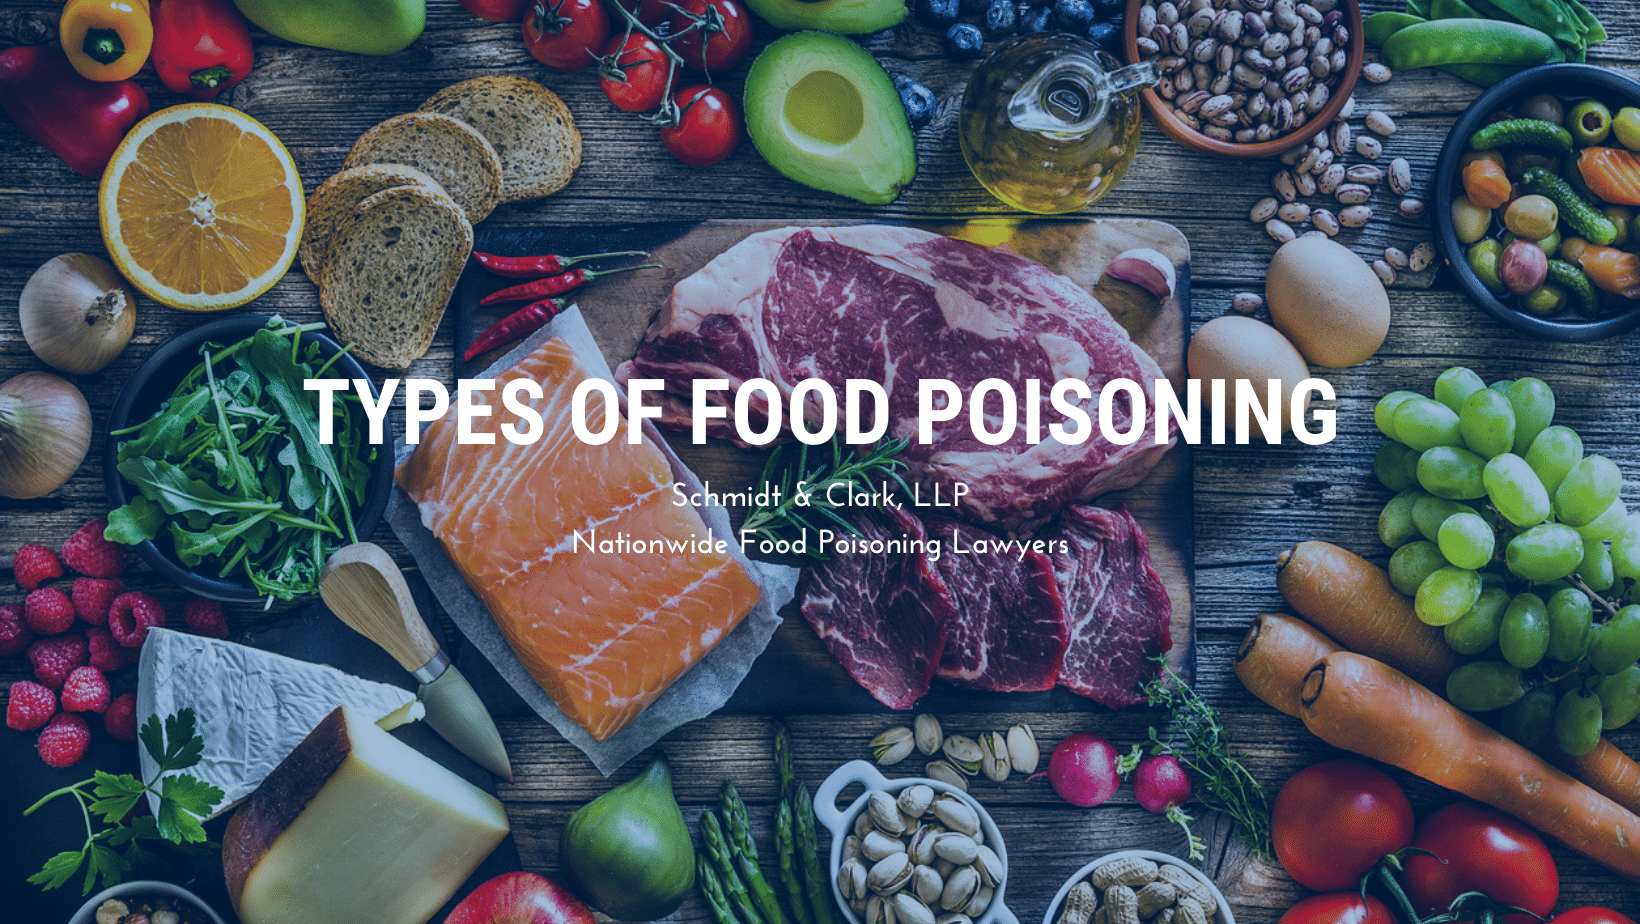 Types of Food Poisoning